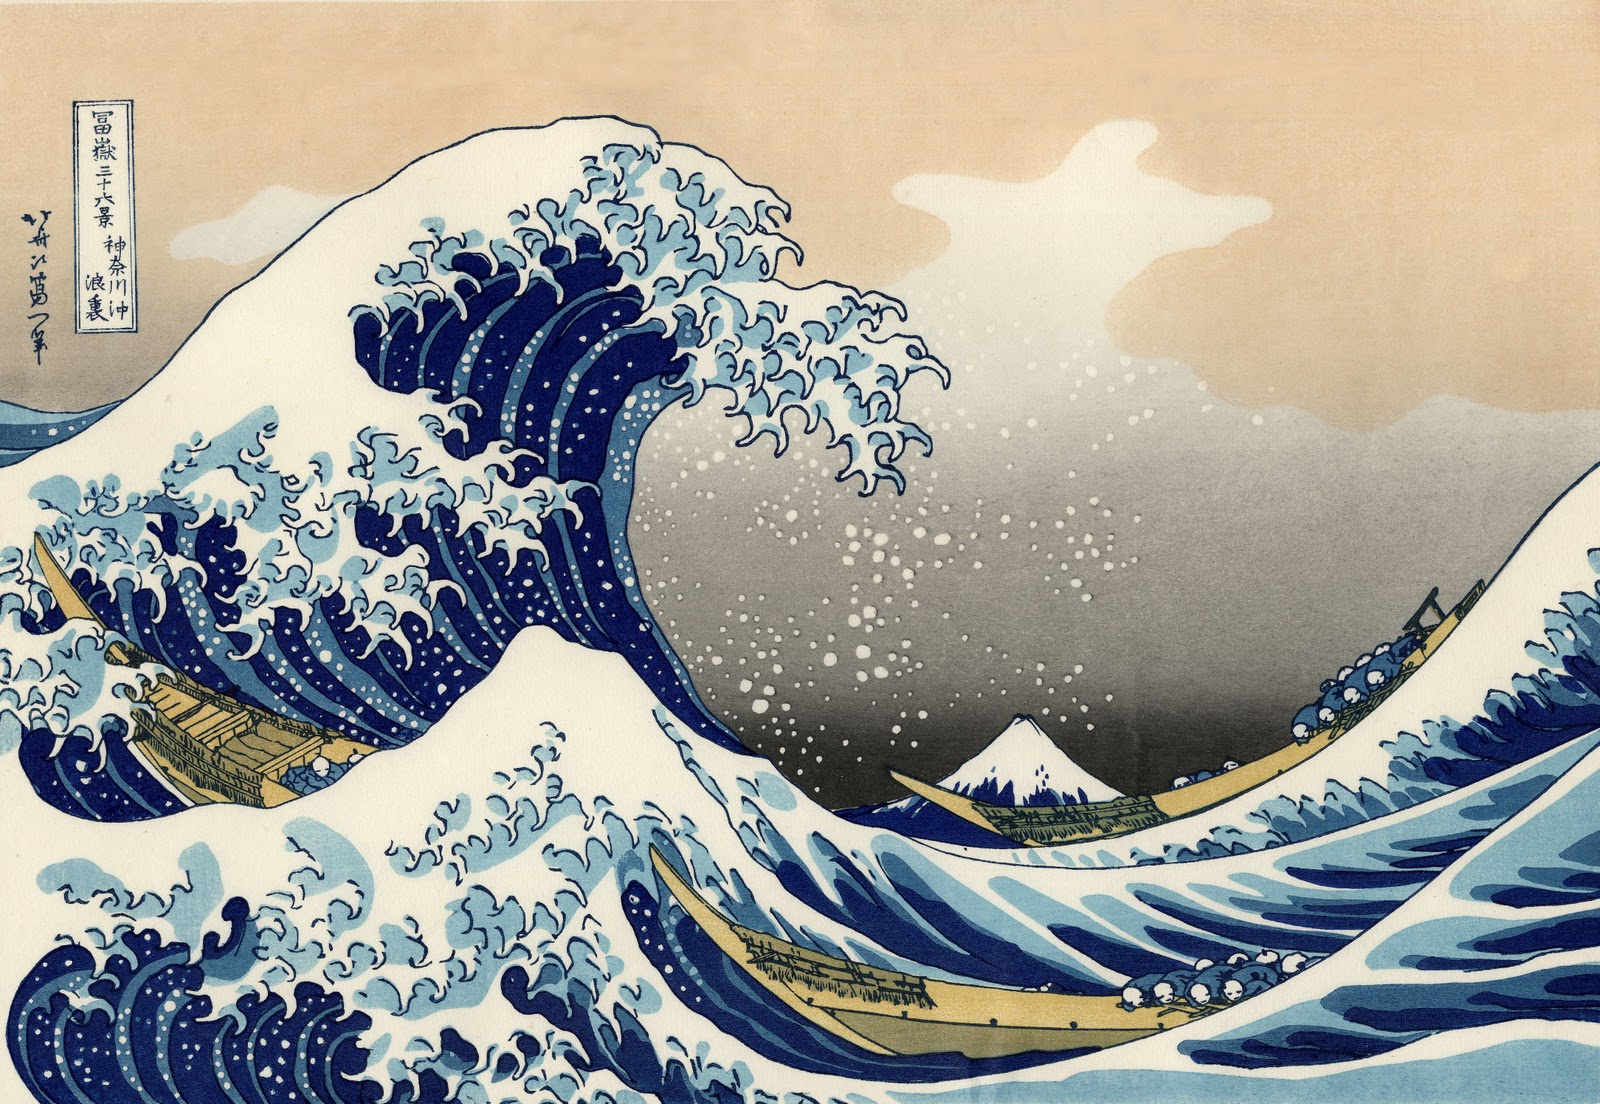 http://3.bp.blogspot.com/_fbFqavOJk3A/S9eCr_JpAXI/AAAAAAAAAMc/OGtCnNuu_R4/s1600/the_great_wave_off_kanagawa.jpg